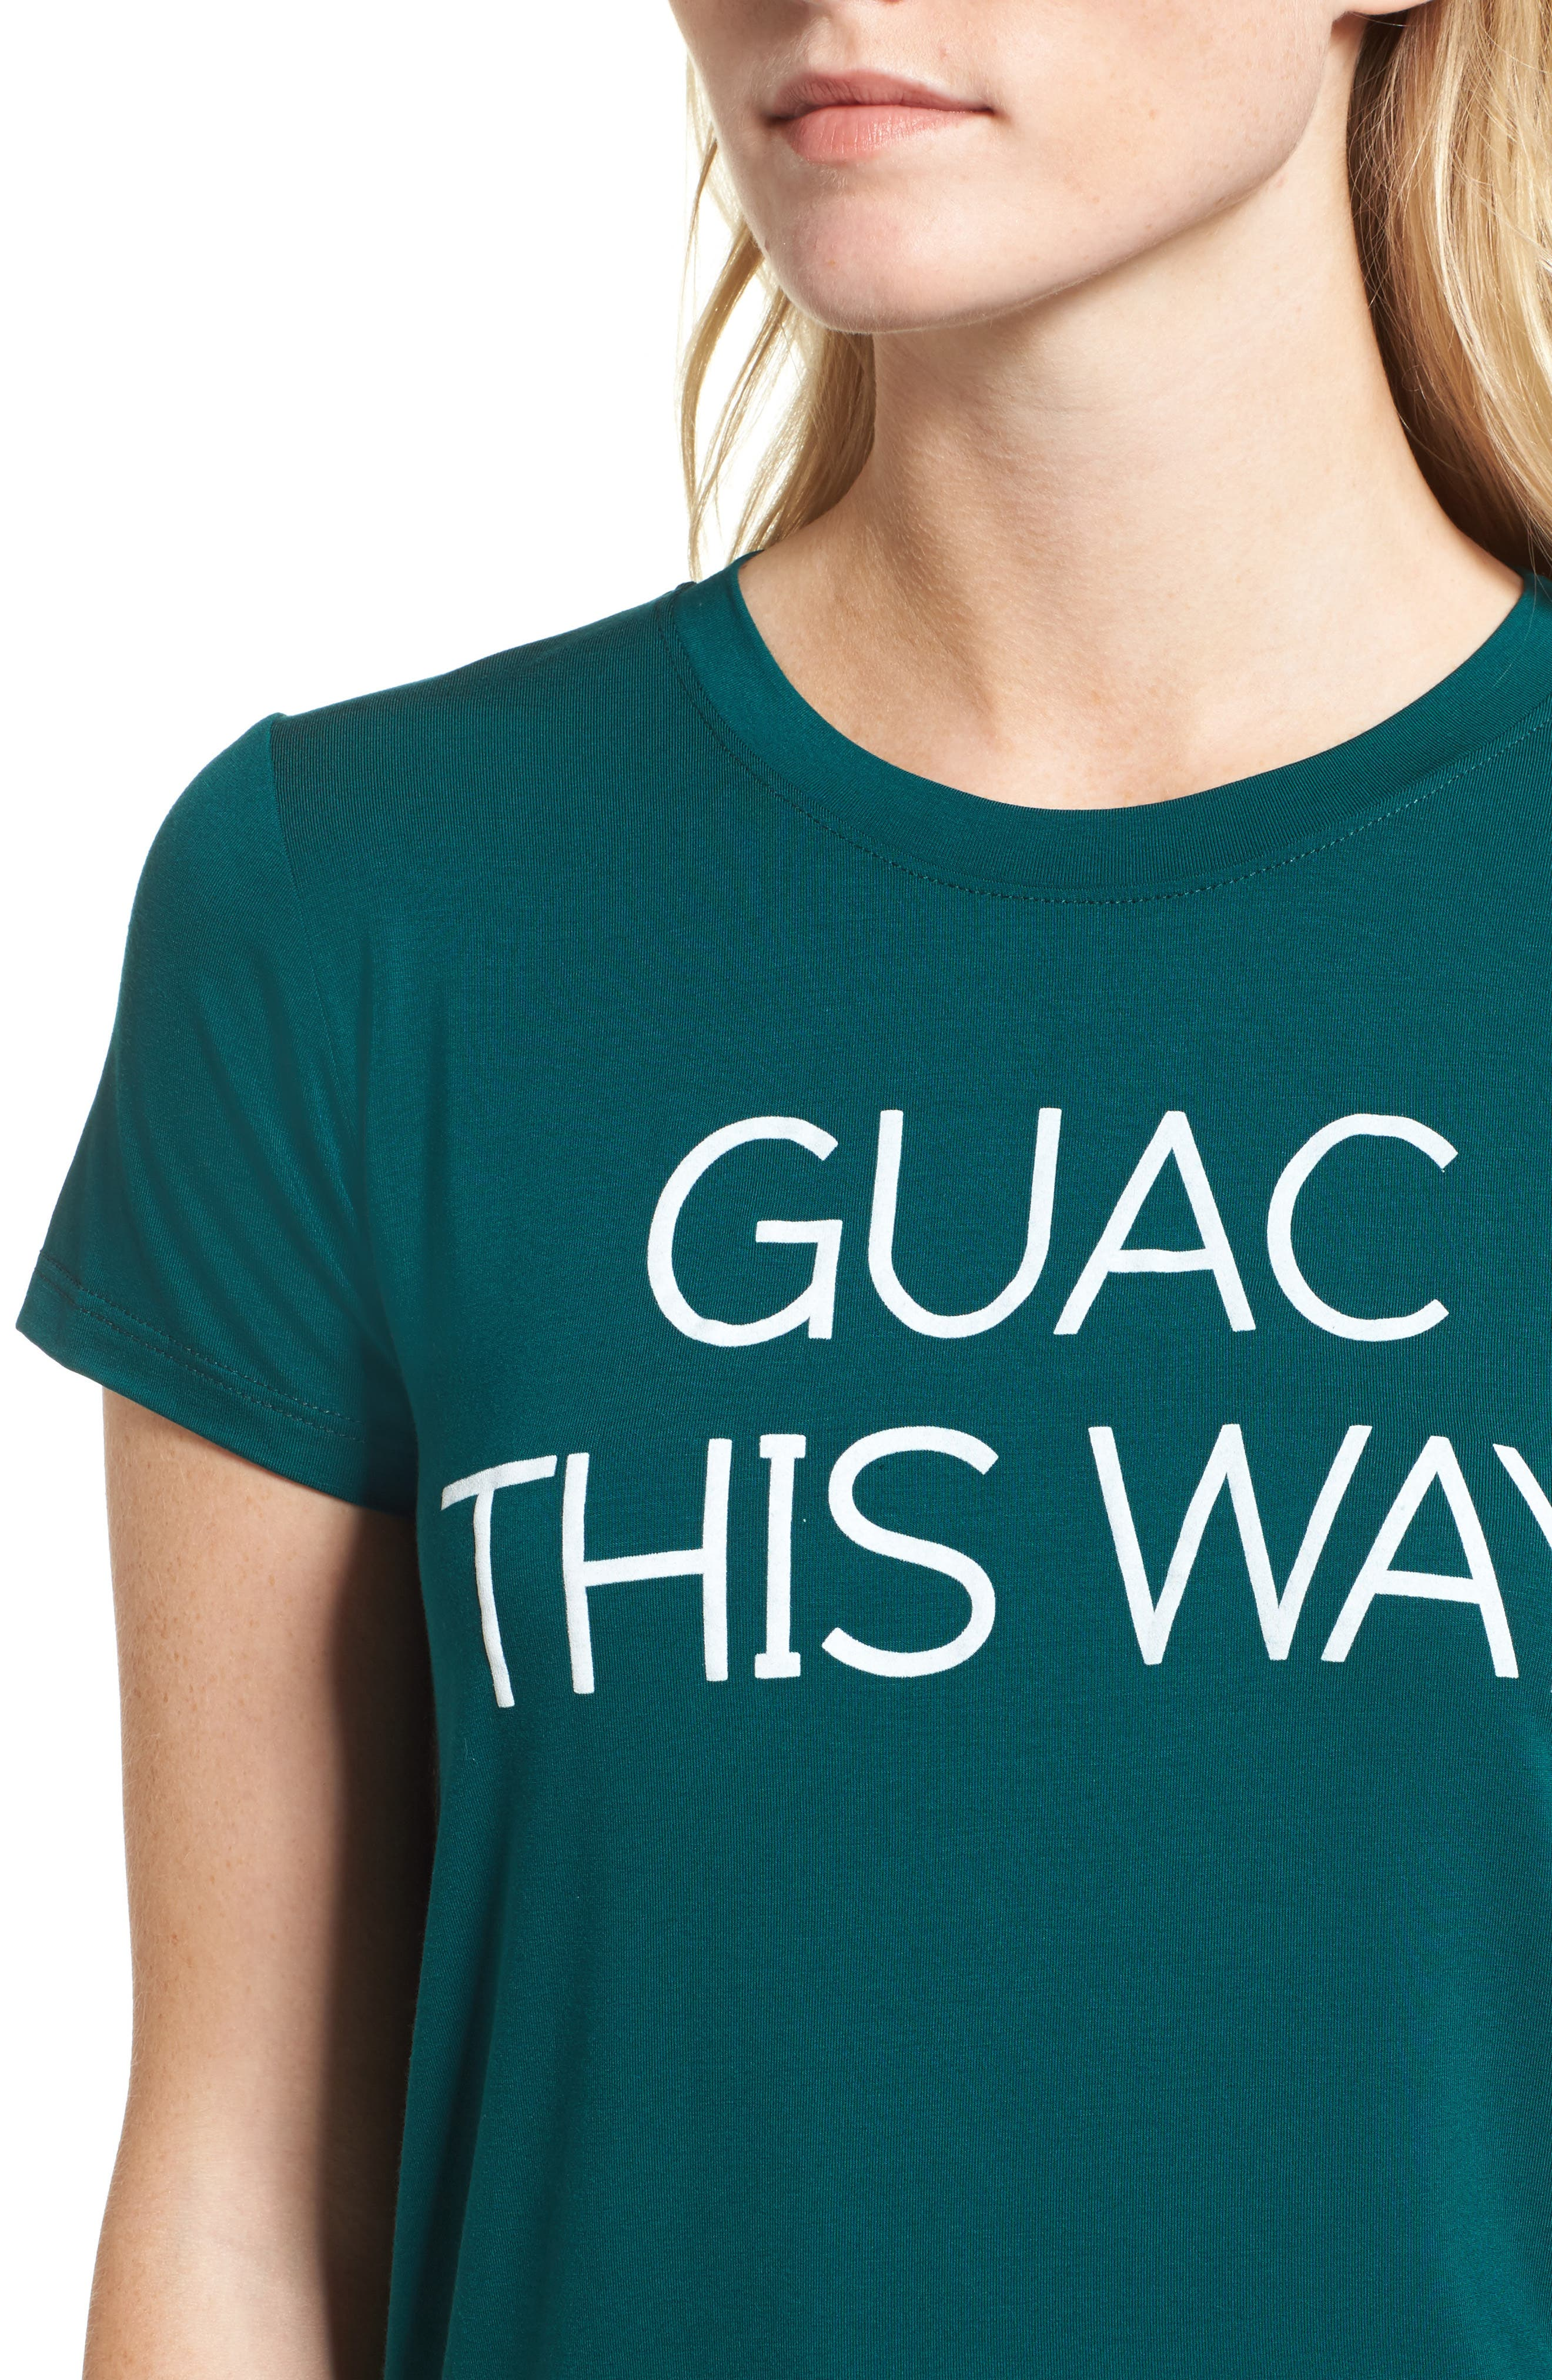 Collection Guac This Way,                             Alternate thumbnail 4, color,                             300